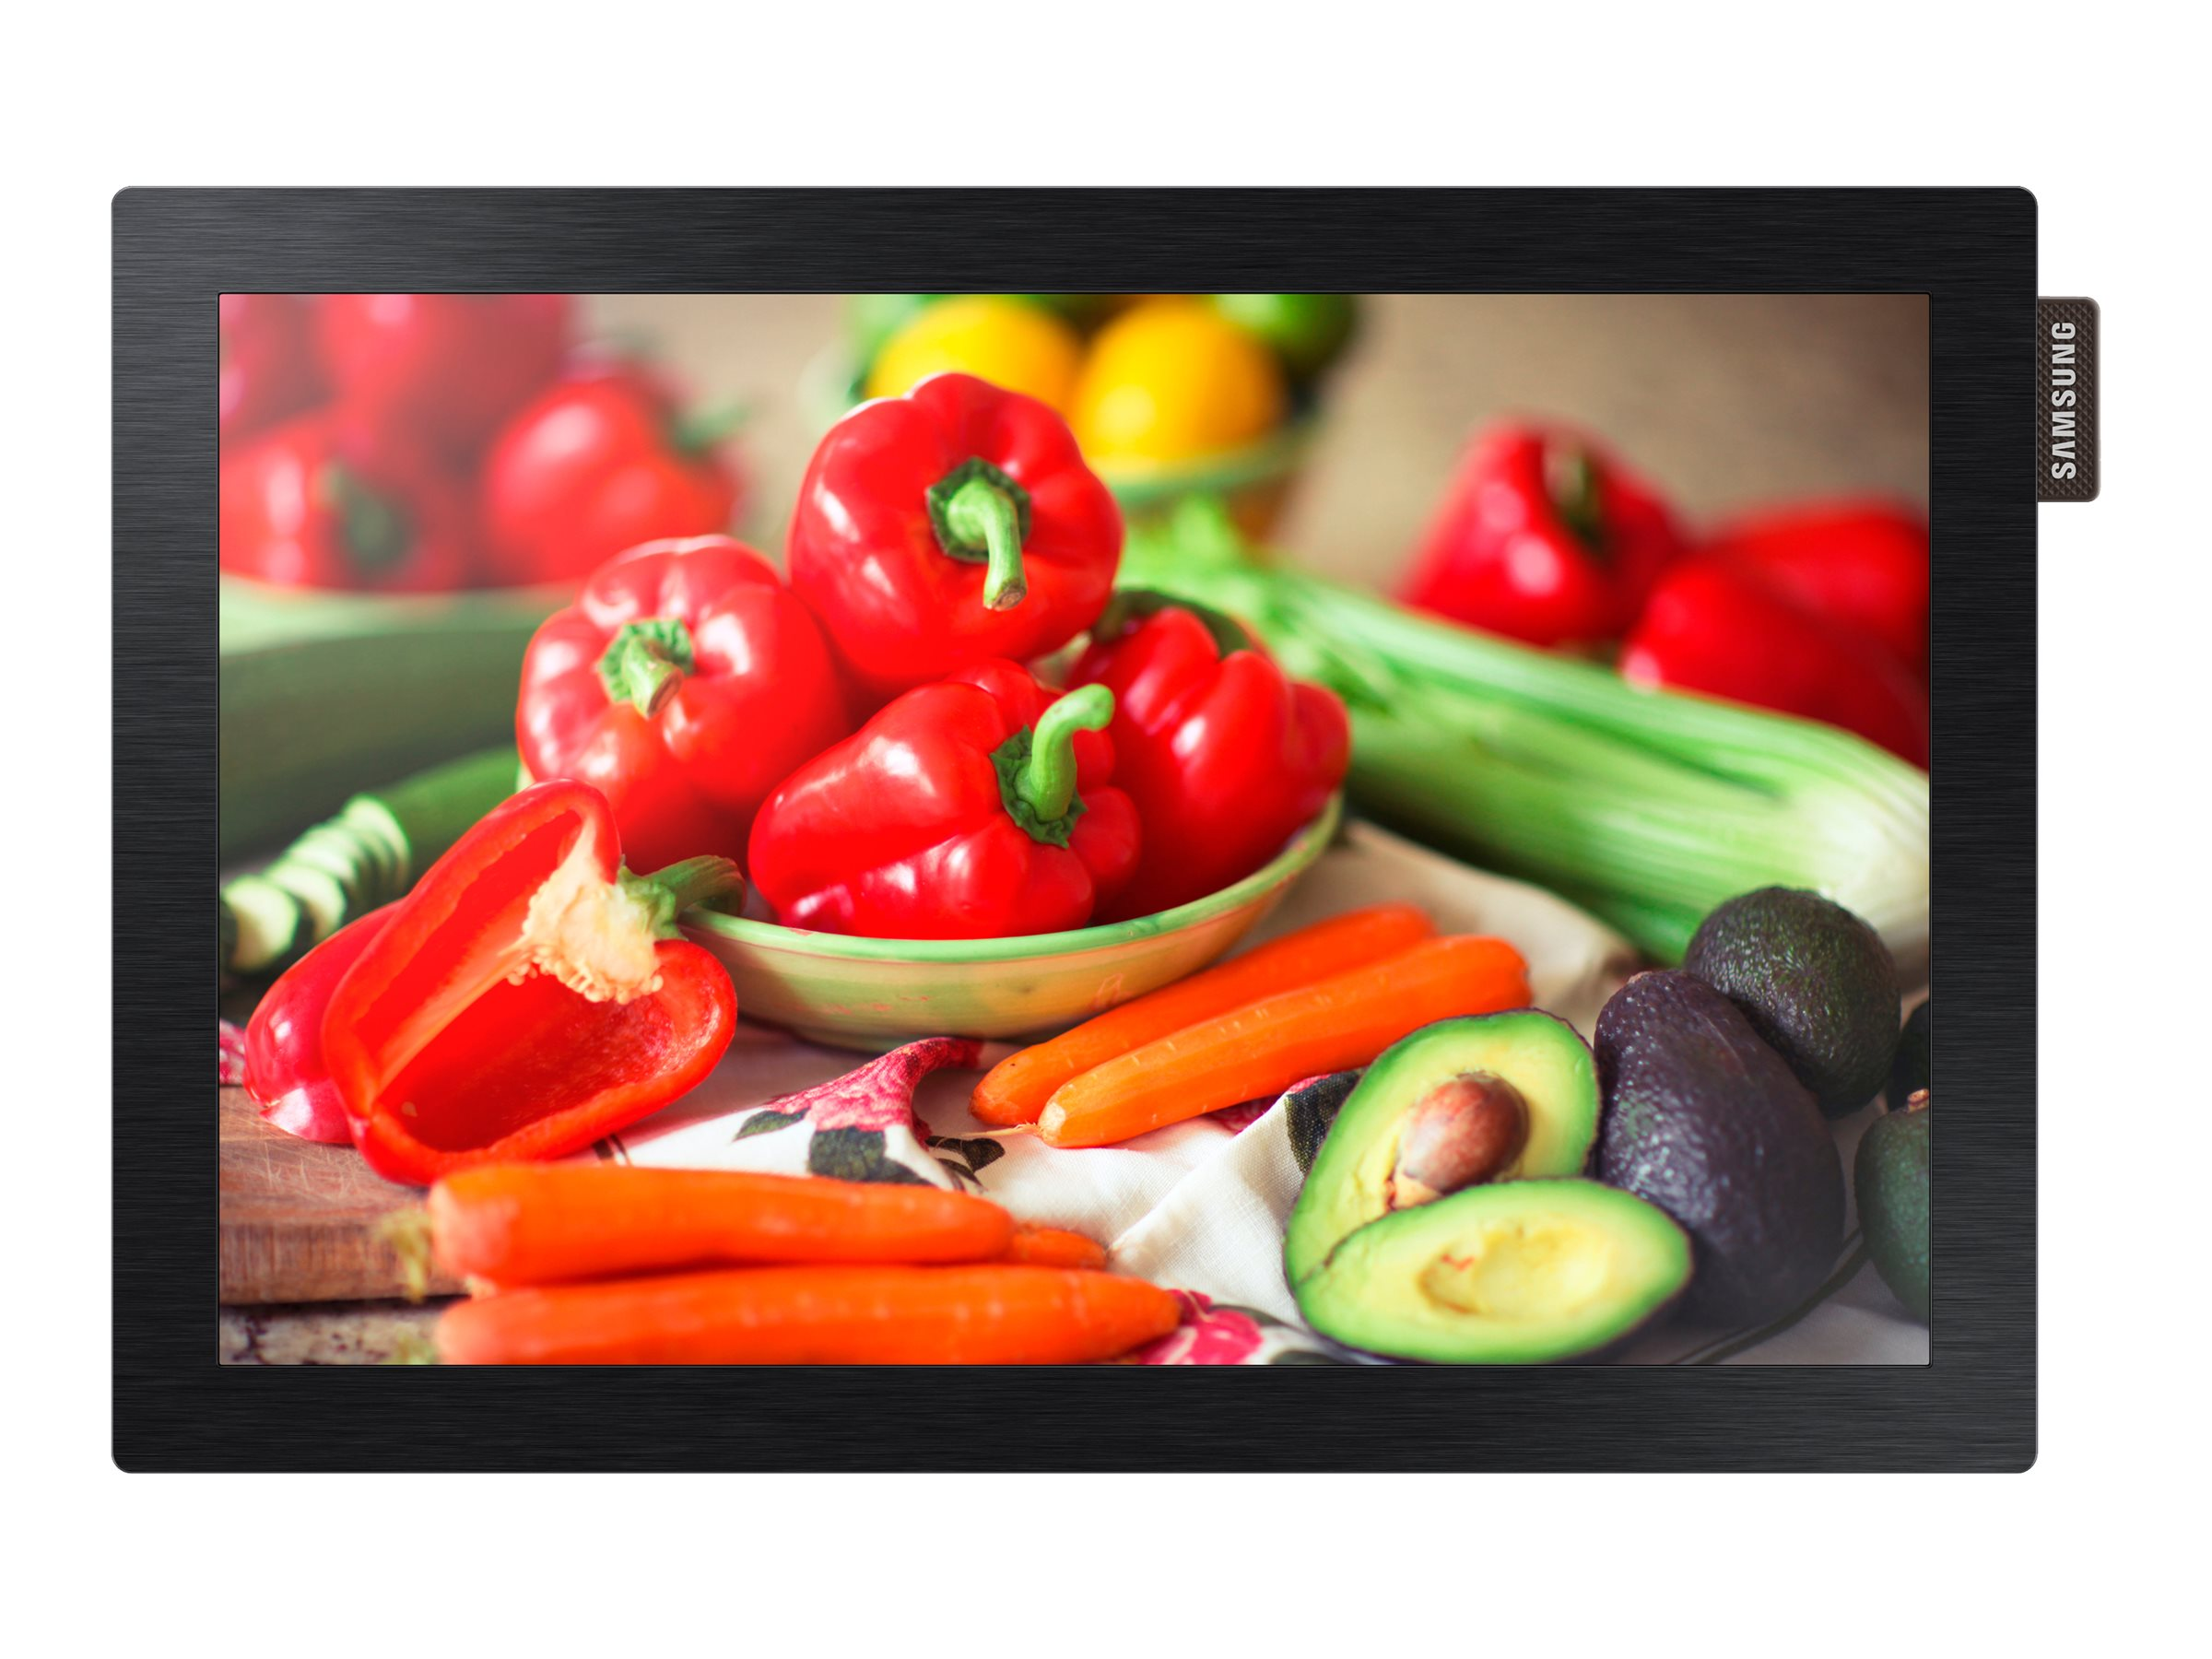 Samsung 10.1 DB10D LED-LCD Display, Black